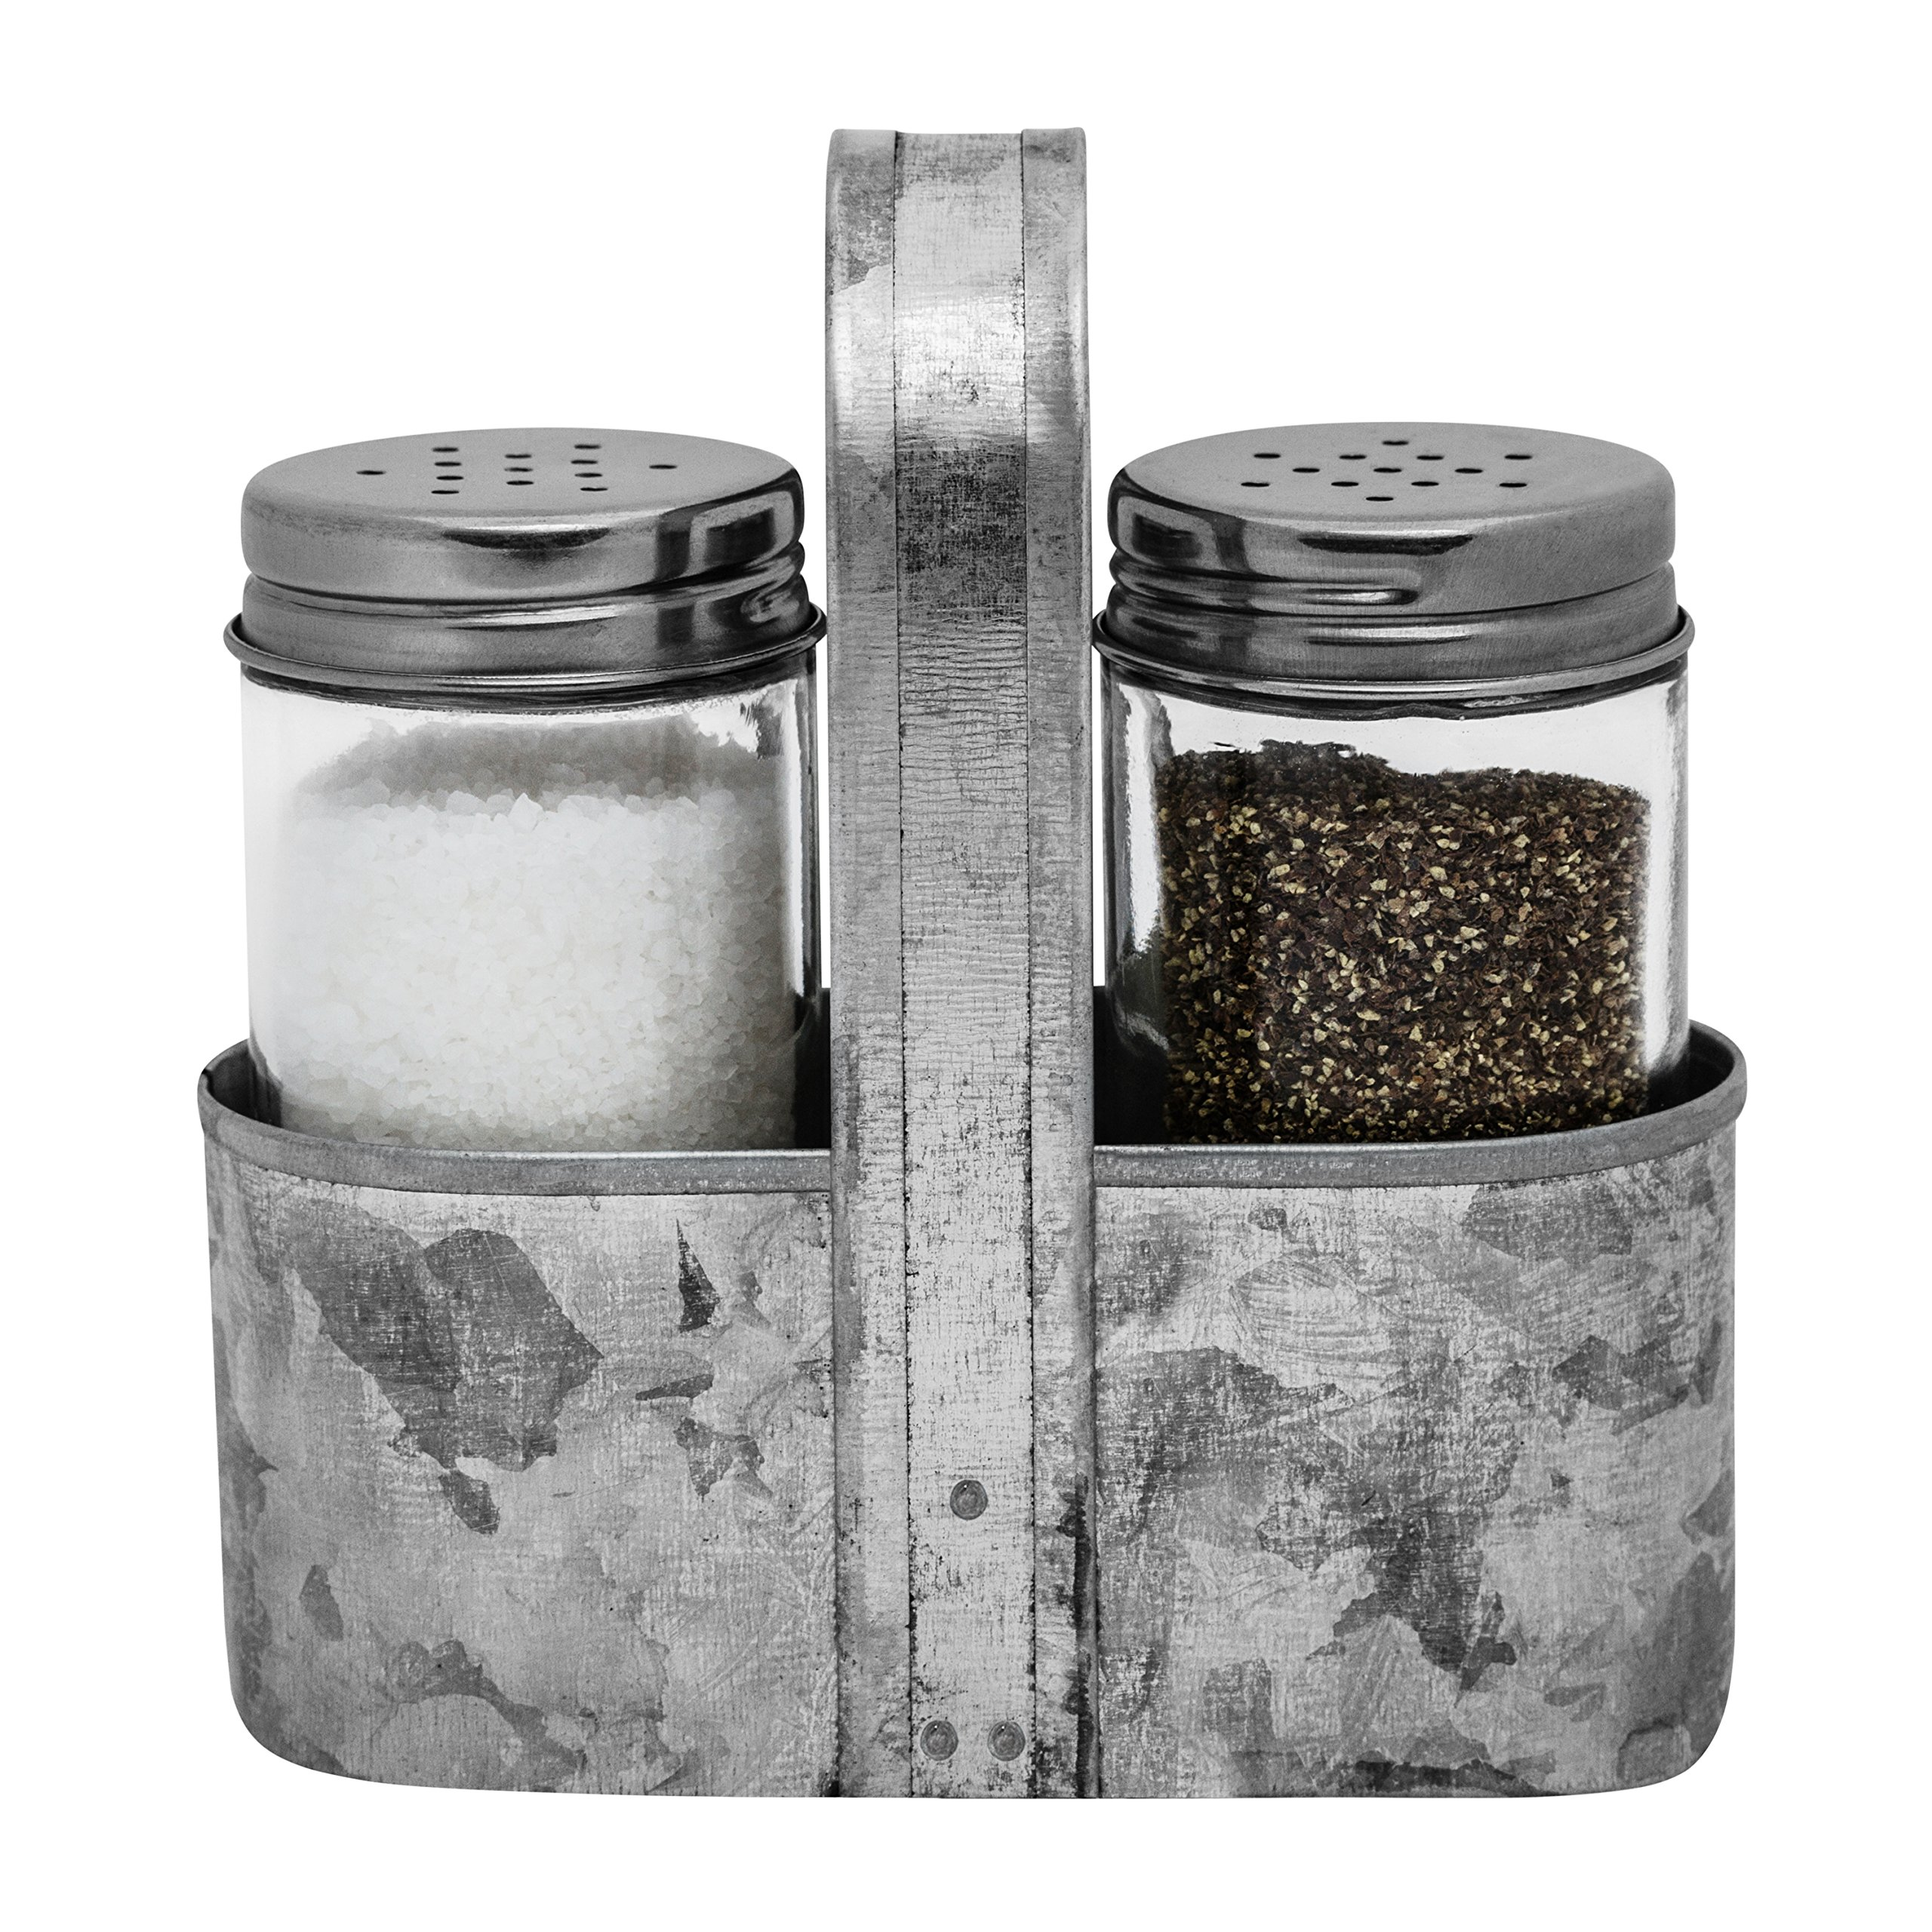 Farmhouse Salt and Pepper Caddy Set by Saratoga Home - Rustic Vintage Galvanized Decor - Weddings, Restaurants - 3-Piece Set - Easy to Clean, No-Mess Refilling by Saratoga Home